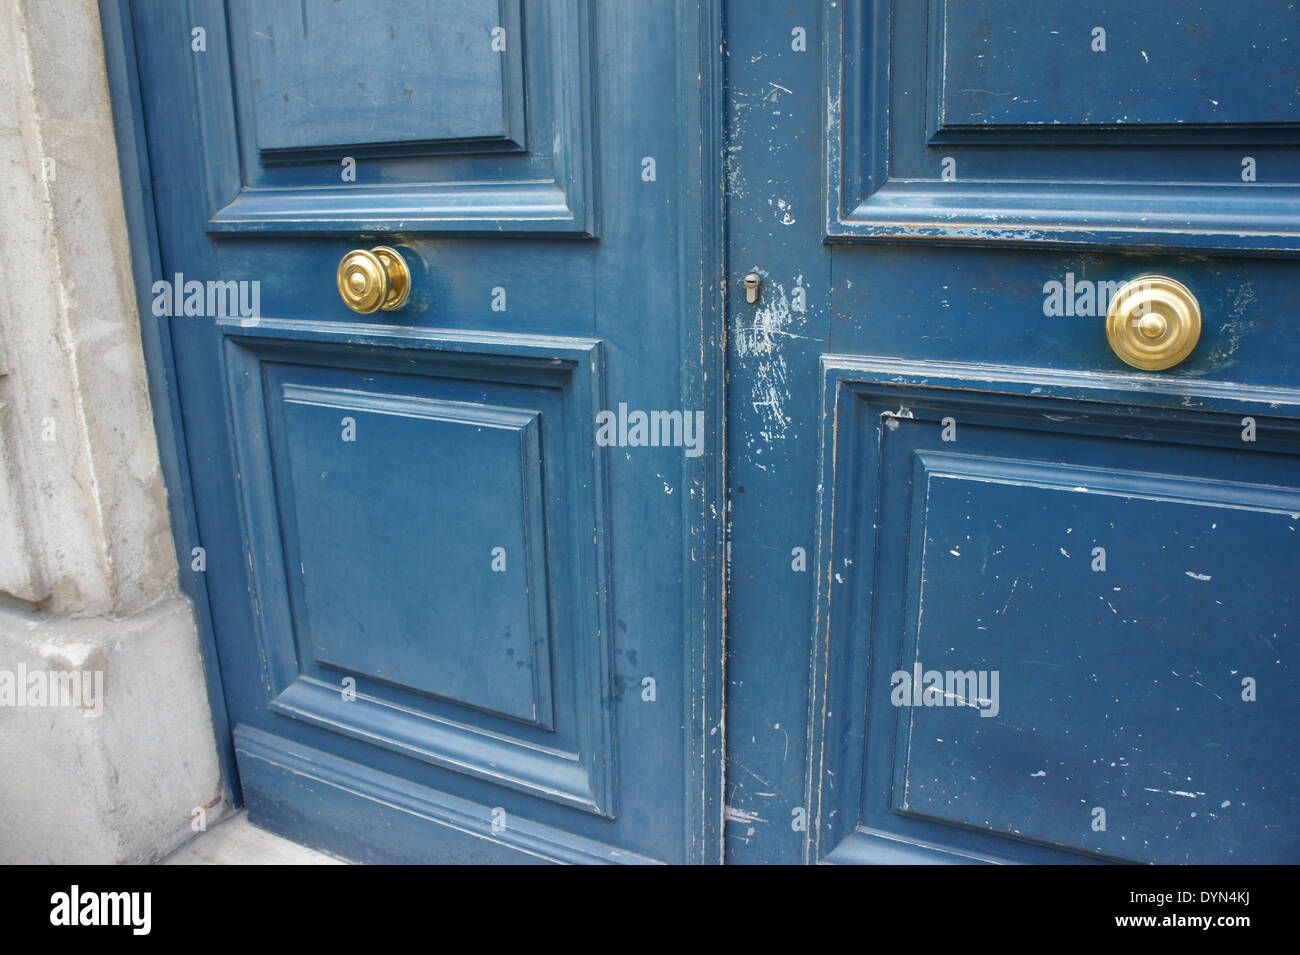 French doors with blue paint and center gold door knobs Stock Photo ...